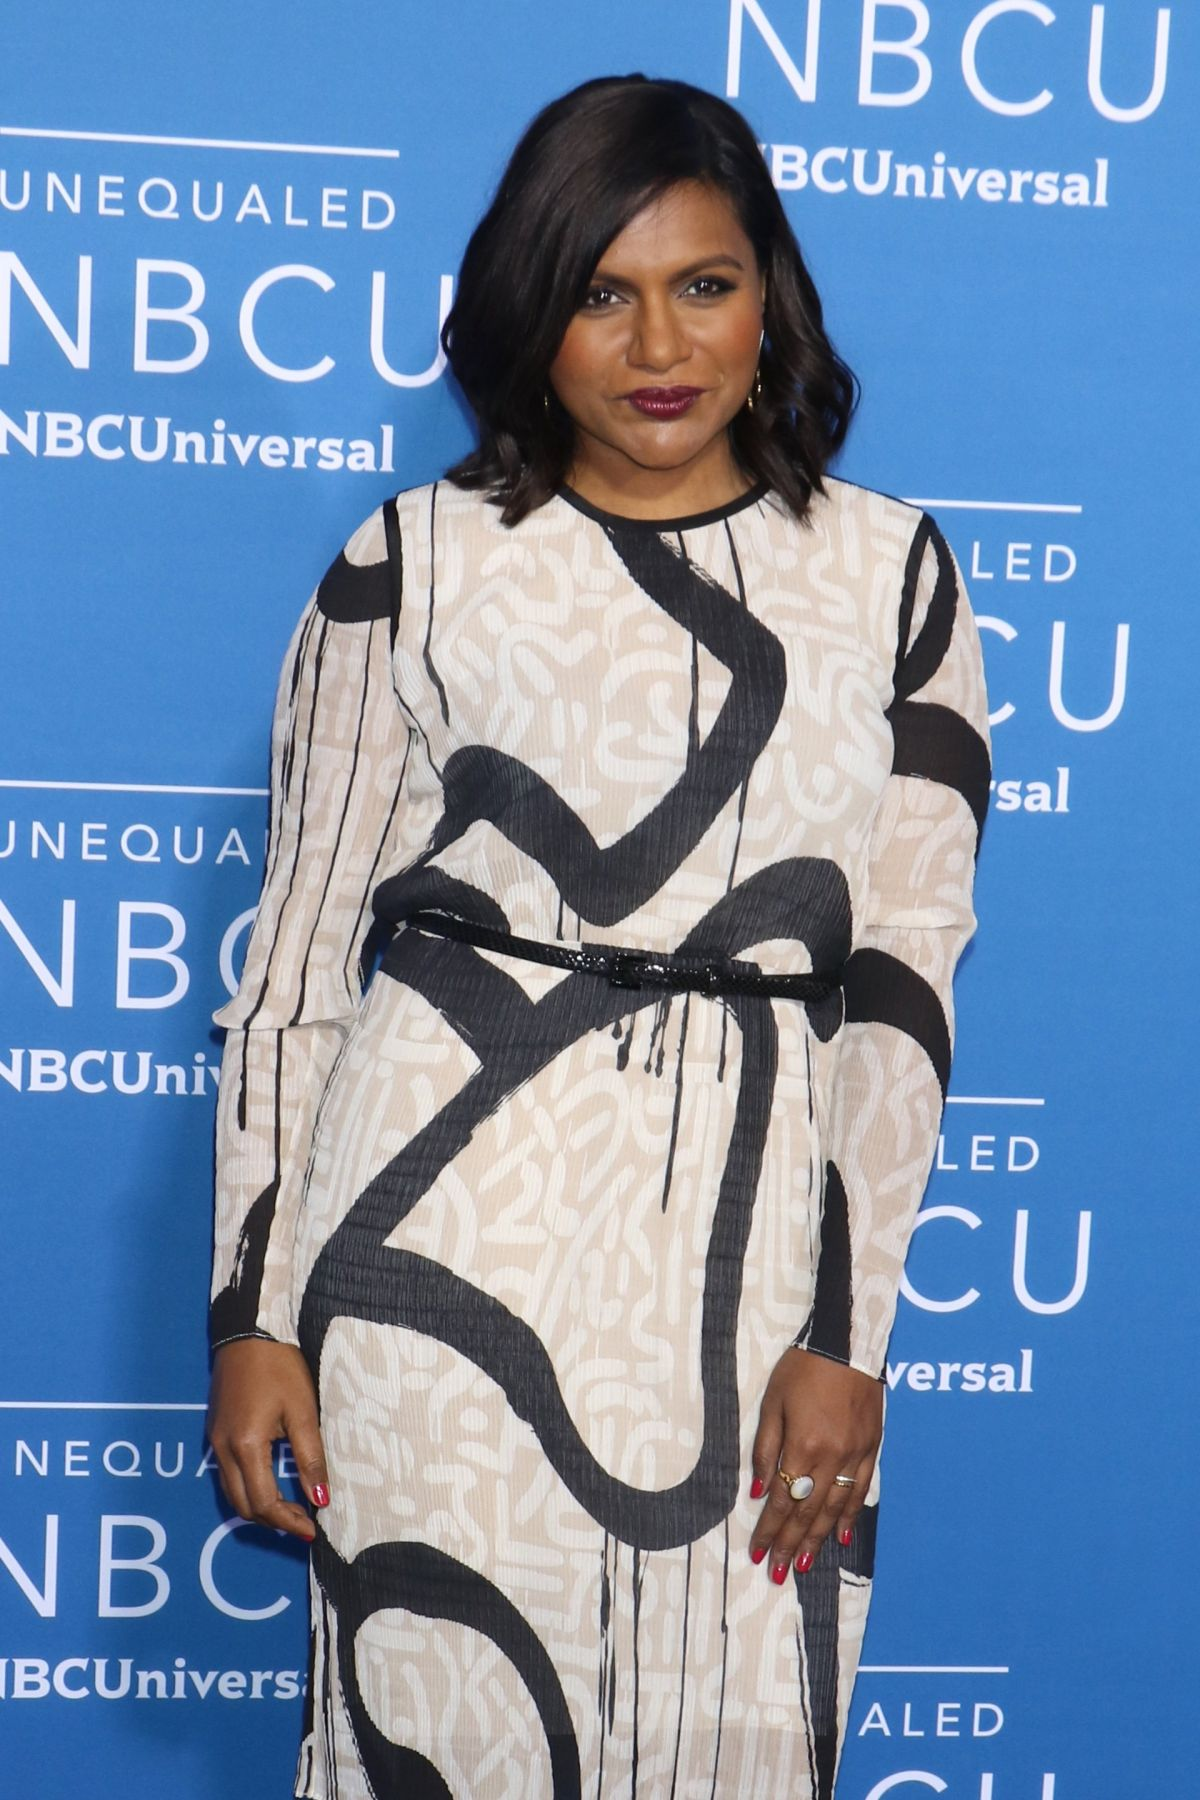 the mindy kaling project A mindy project roundtable three writers and fans of mindy kaling's fox show sit down to talk about kaling's take on race, gender, body image — and what it means for viewers who don't often see themselves reflected in television.